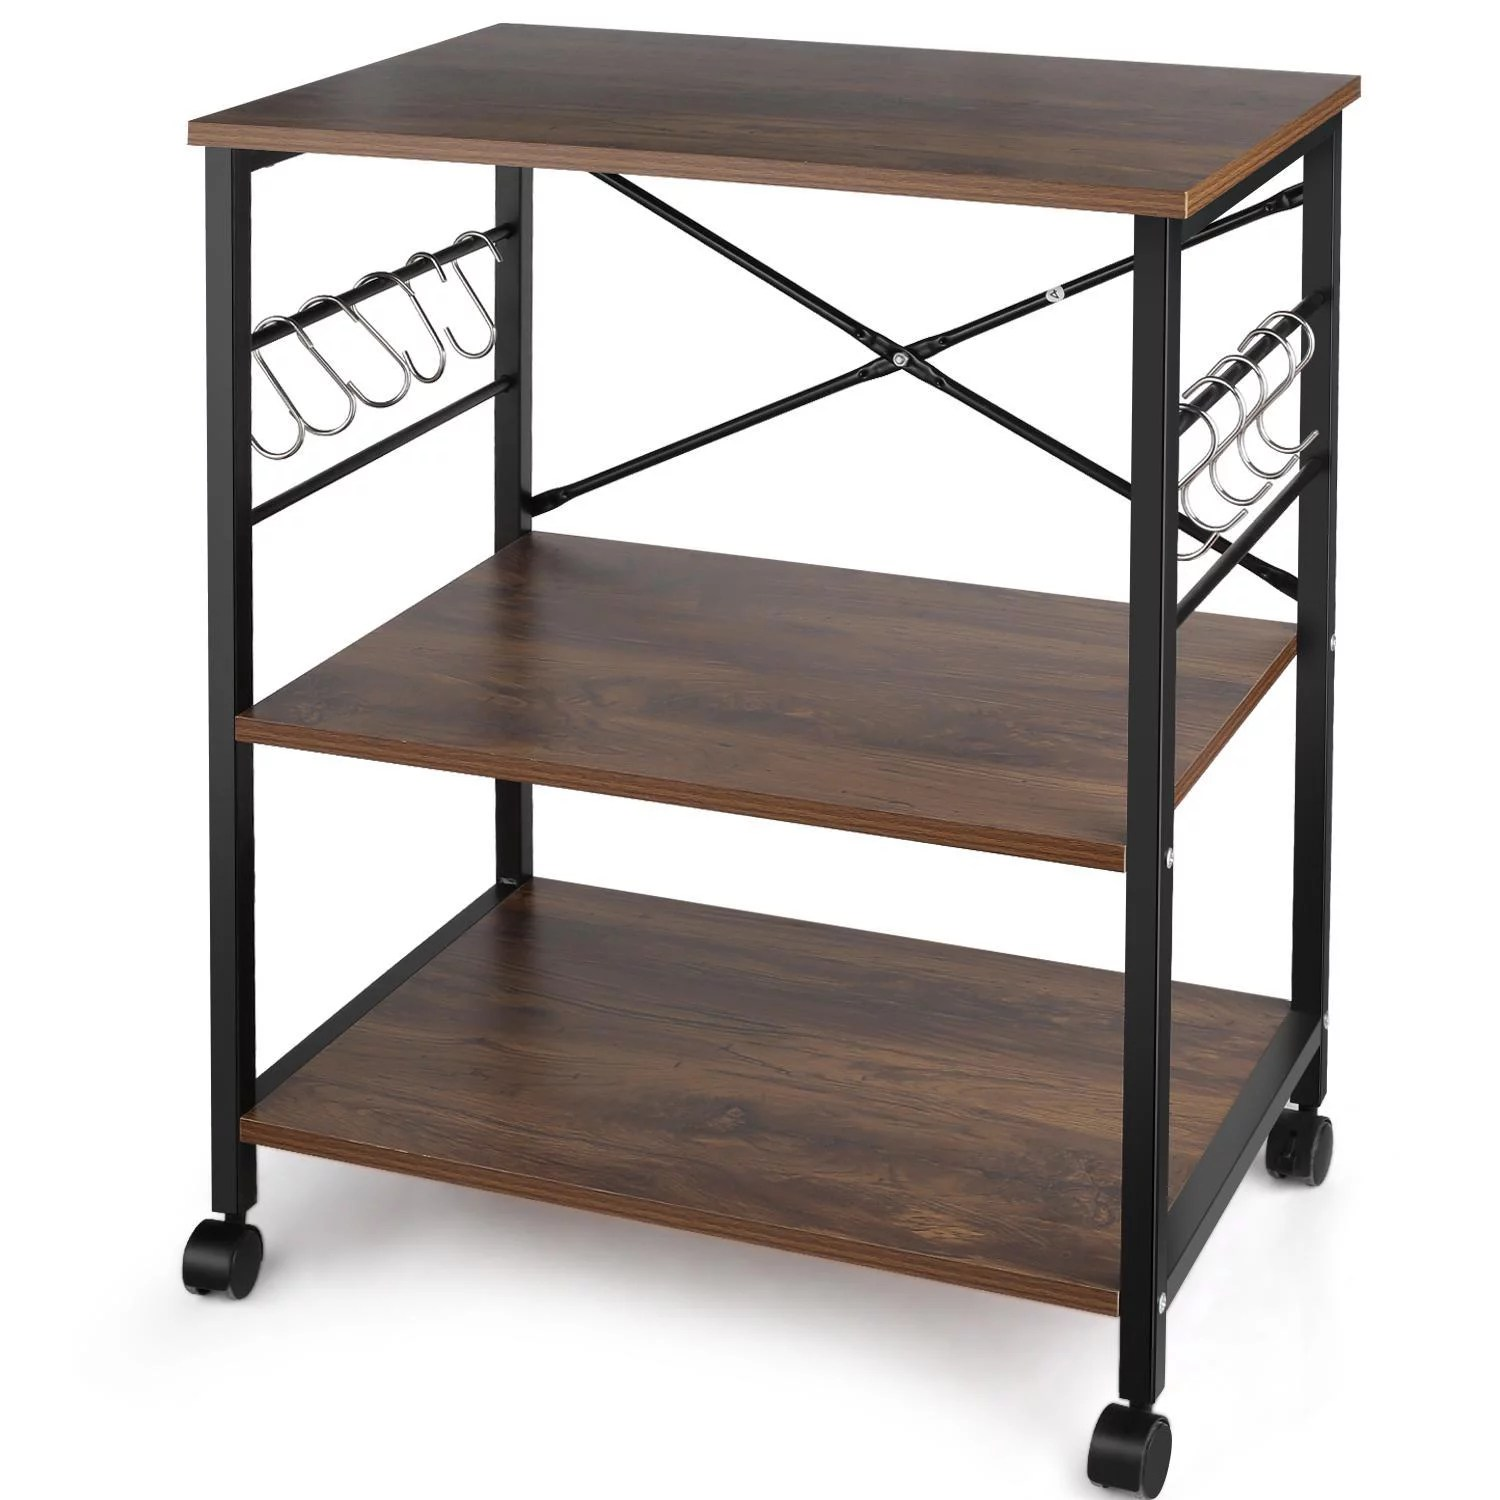 3 tier kitchen cart multifunction rolling microwave oven stand utility storage shelf with metal frame and 10 hooks